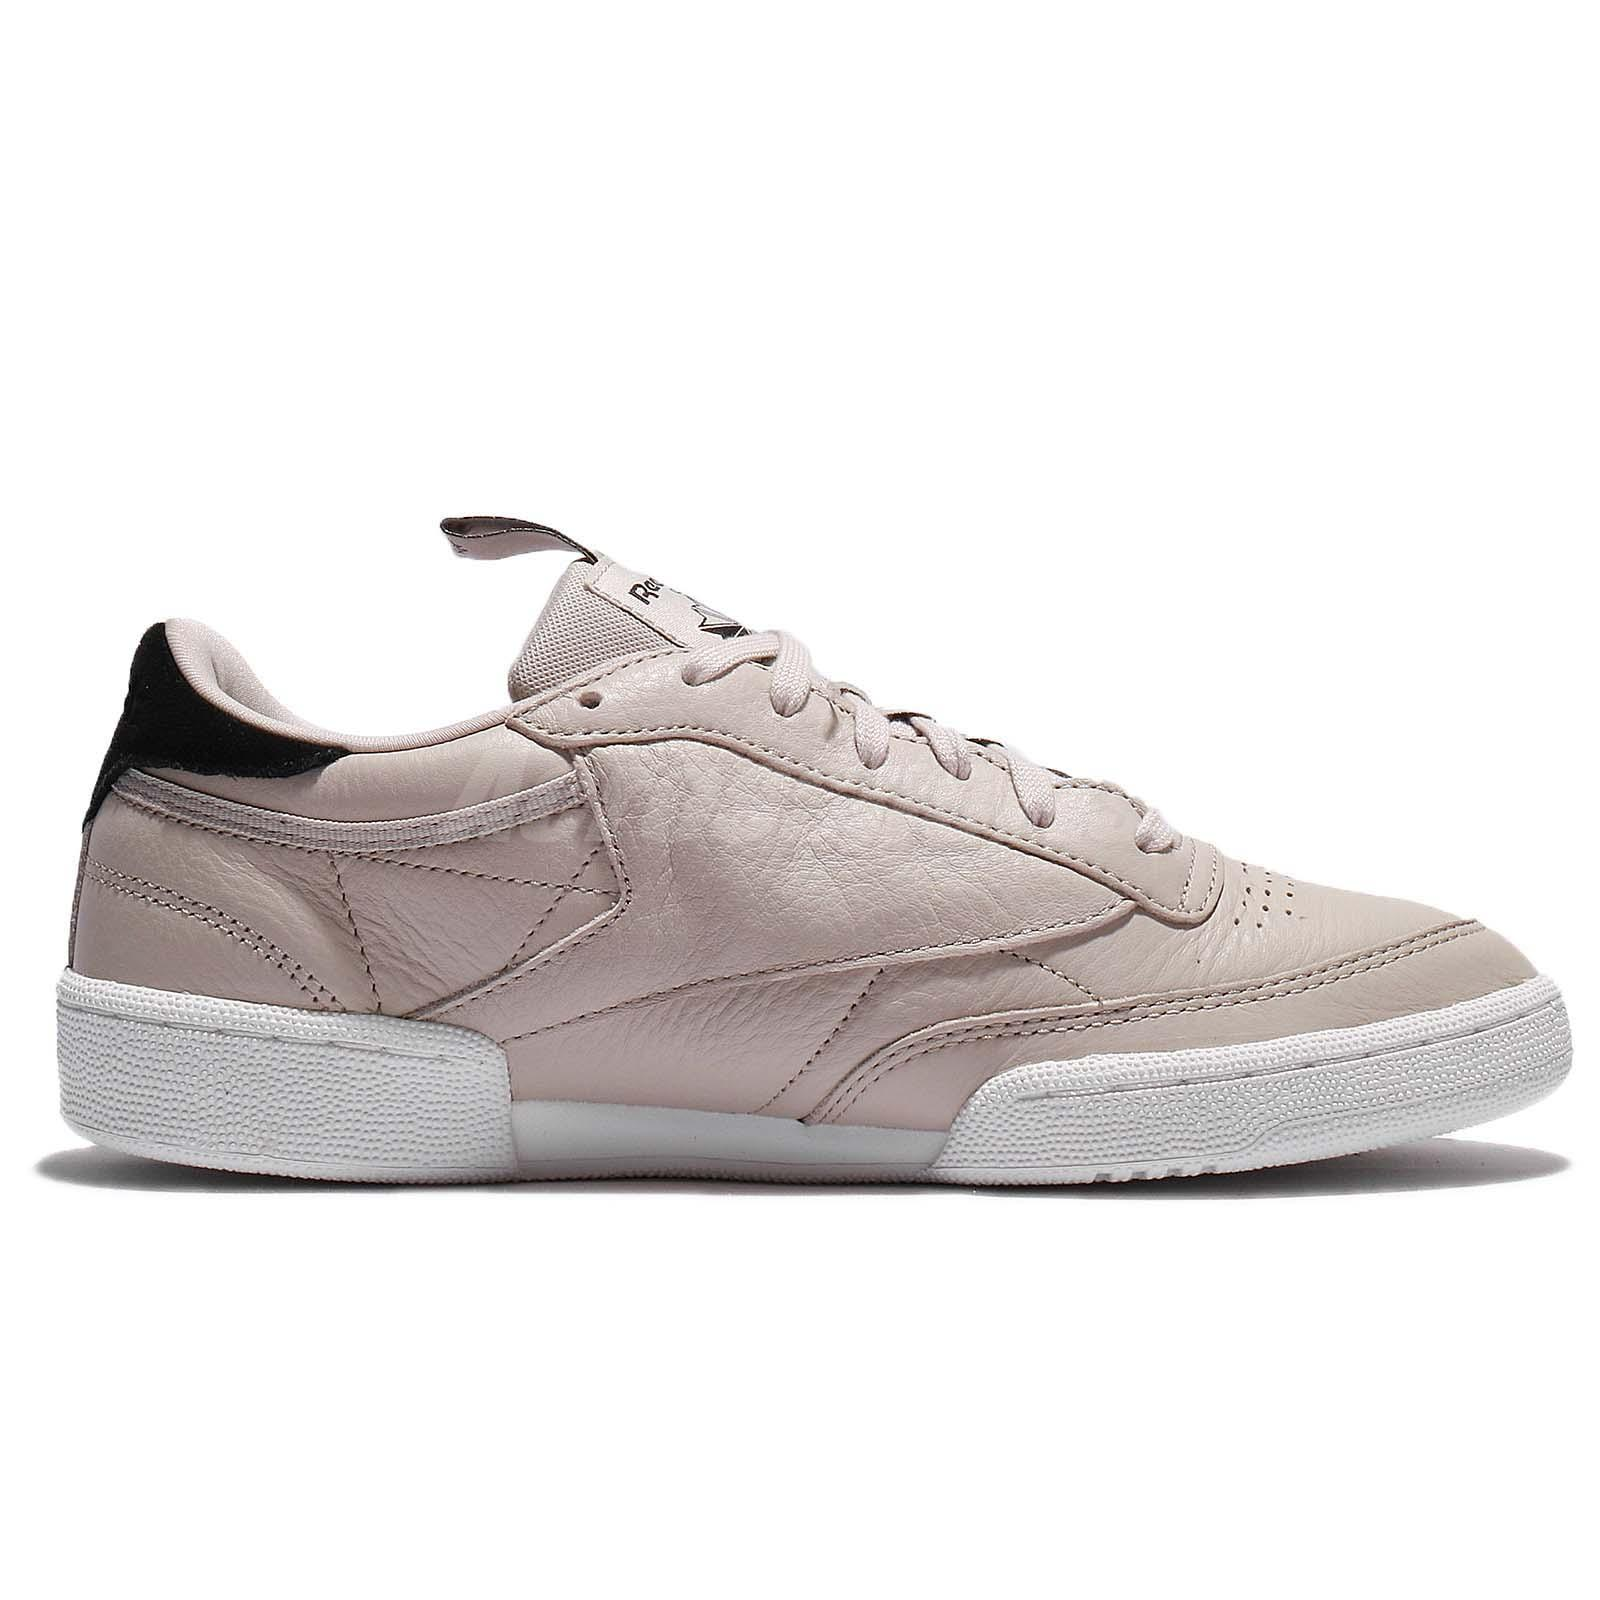 Xing Lin pour homme Sandales pour homme Chaussons pour homme Summer Cool Chaussons Chaussures de trou pour homme pour homme Double Chaussures de plage pour homme Demi Chaussons Lazy Chaussures de Wading pour homme Chaussures Martinelli 40 noires Casual  40 Y7NgXU